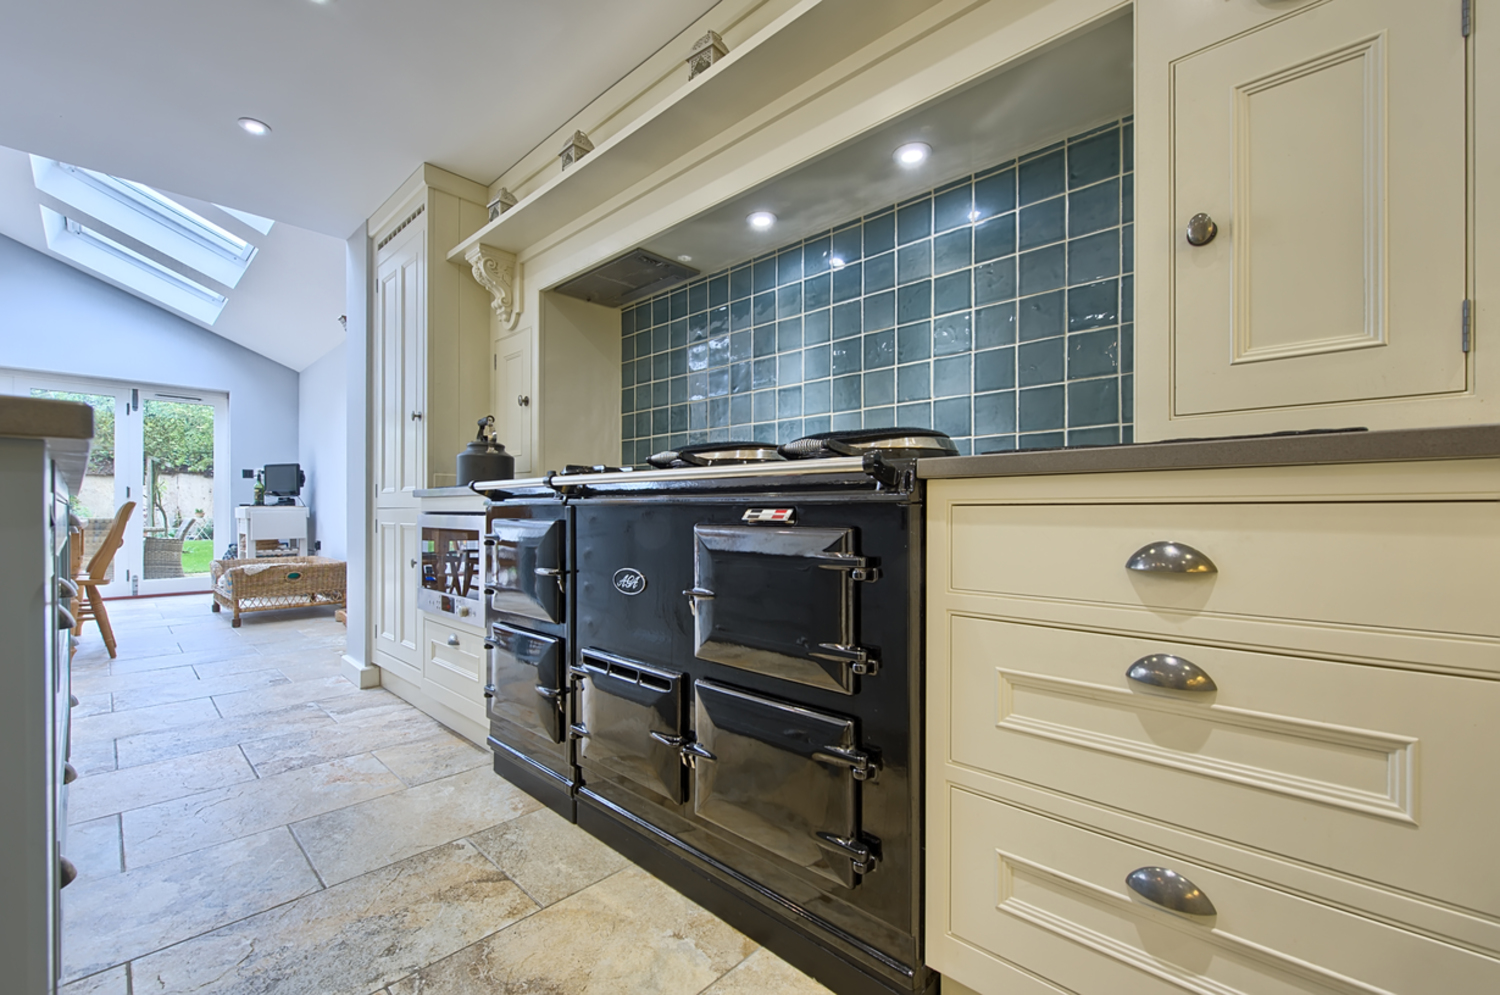 Kitchen aga of a house redesign by Harvey Norman Architects Cambridge